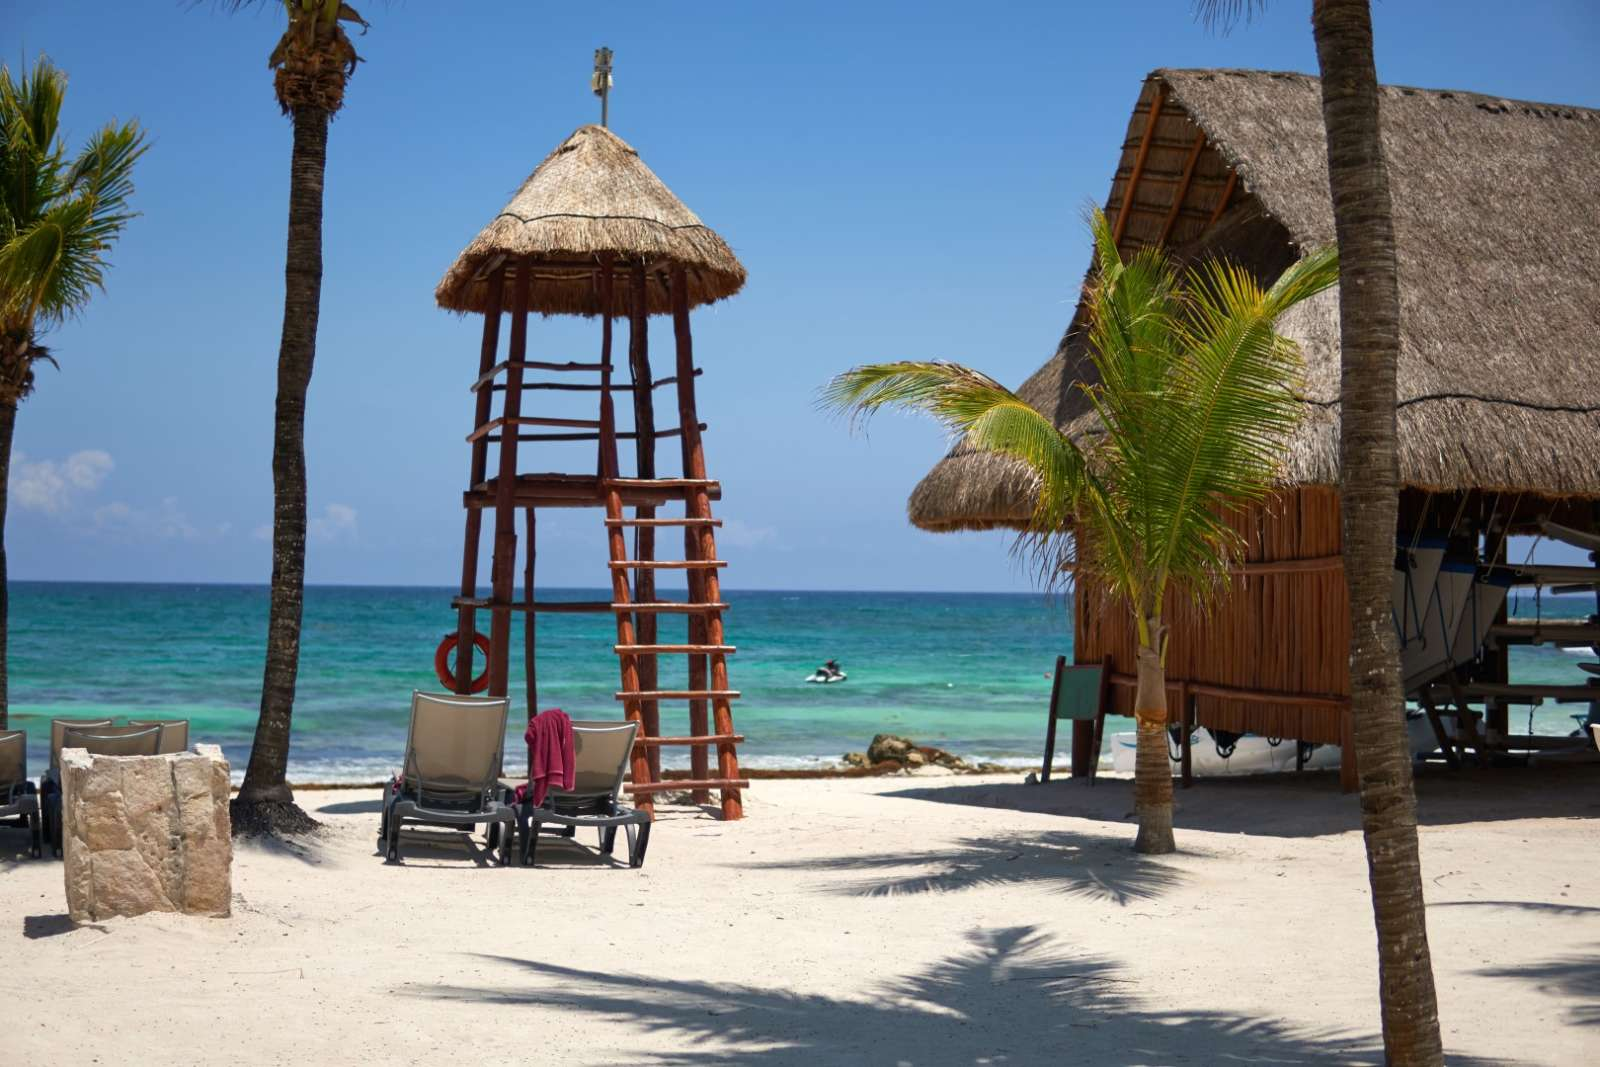 Lifeguard tower at Riviera Maya Mexico